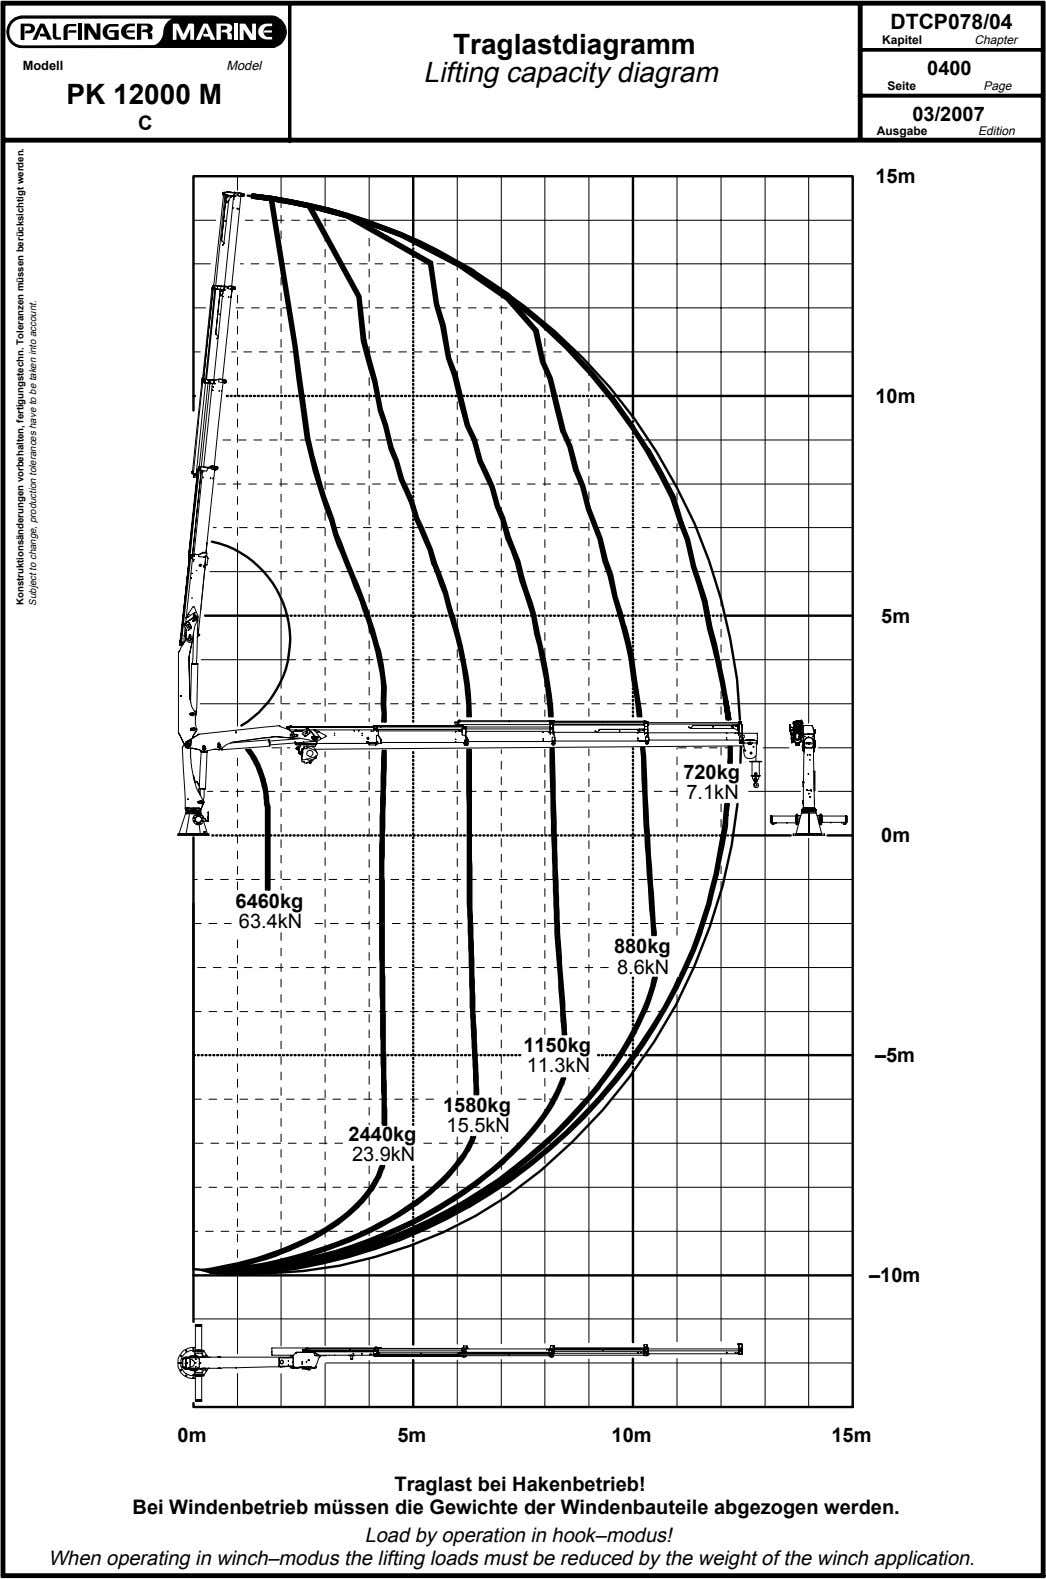 DTCP078/04 Traglastdiagramm Kapitel Chapter Modell Model Lifting capacity diagram 0400 Seite Page PK 12000 M